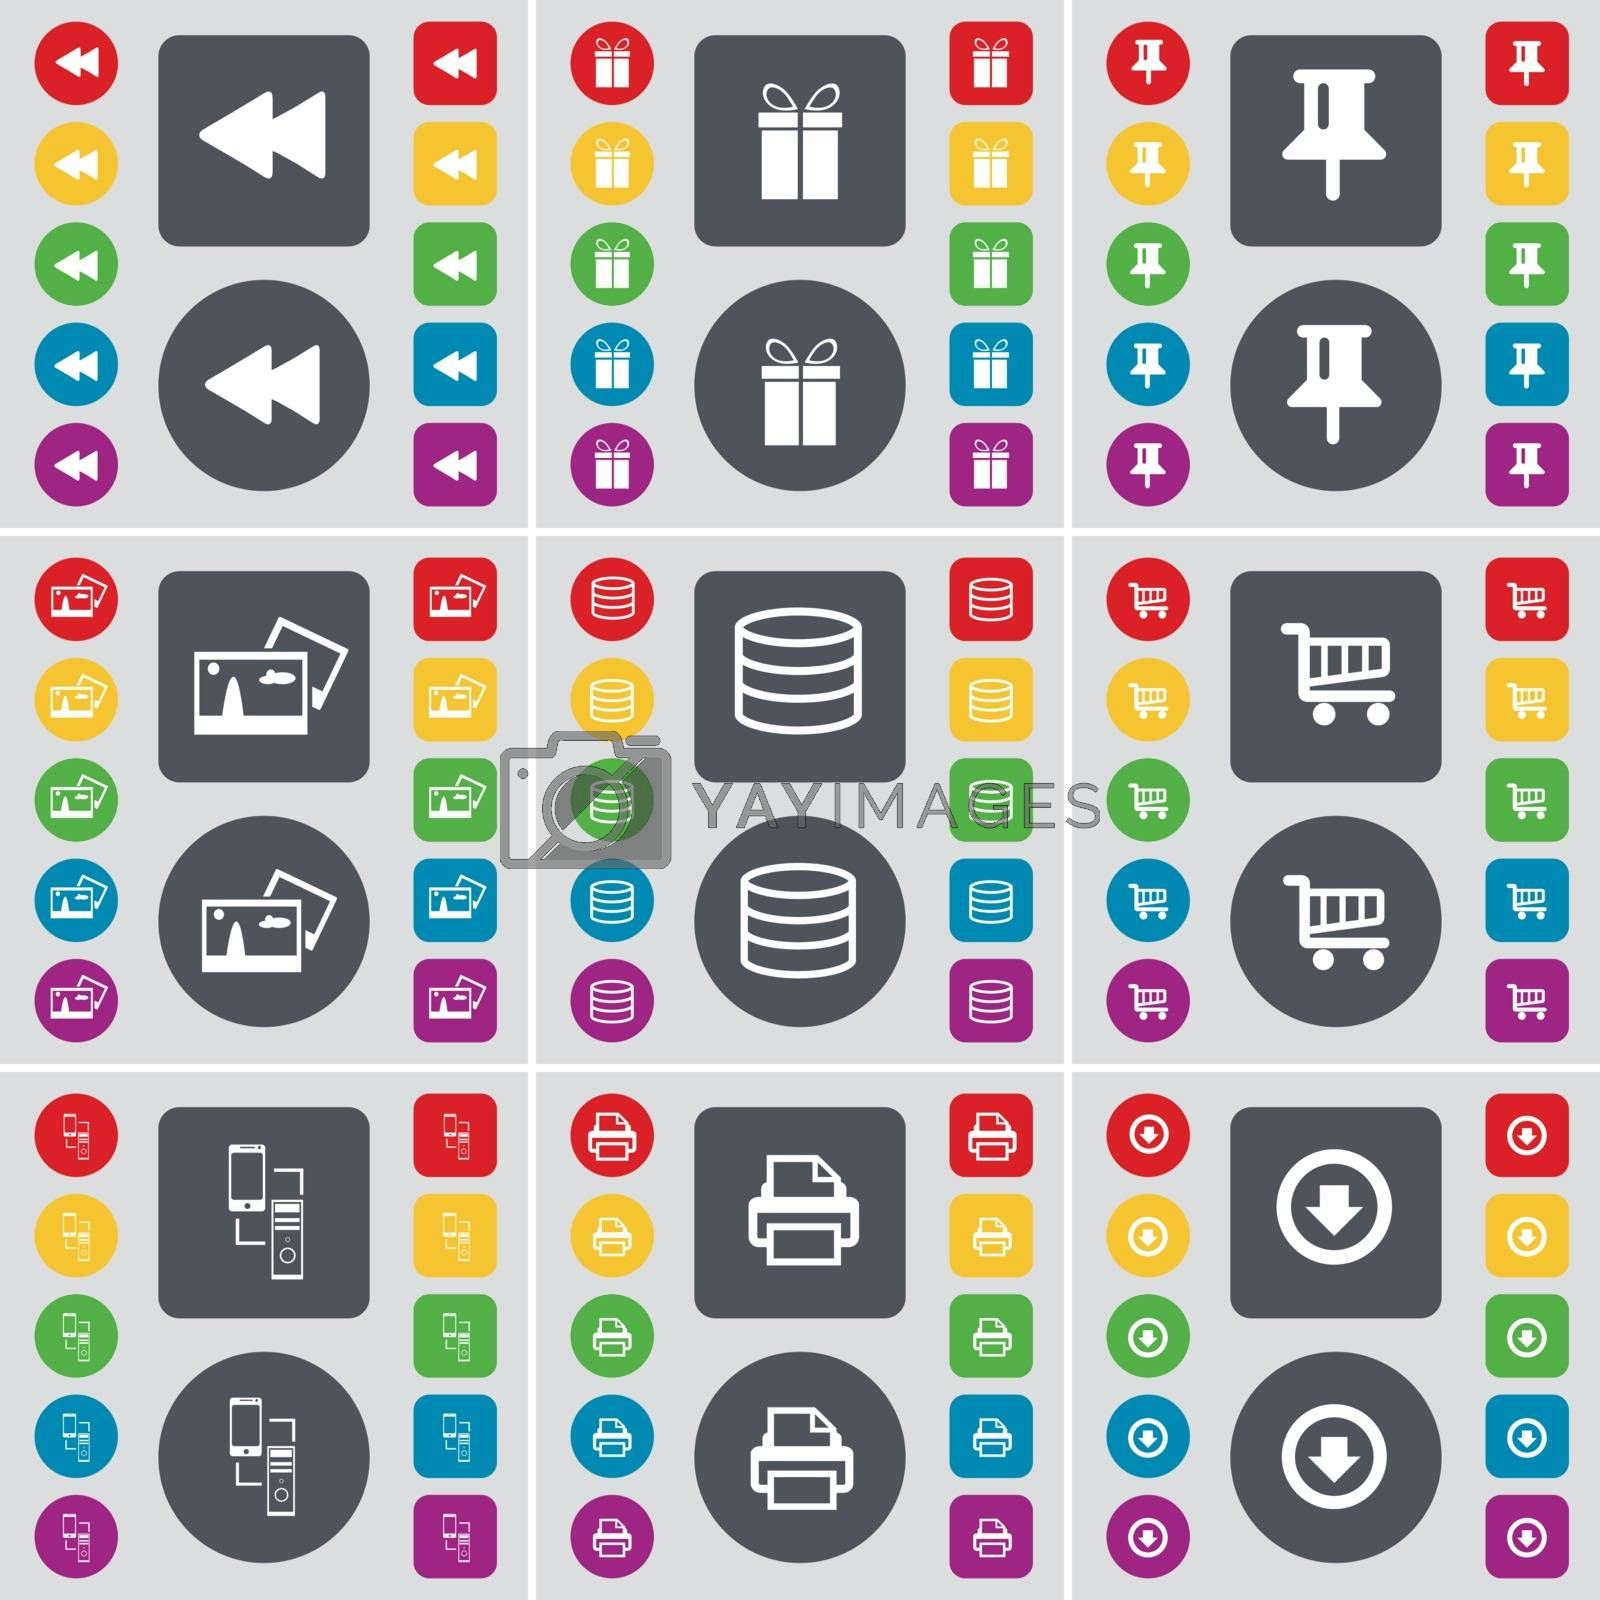 Royalty free image of Rewind, Gift, Pin, Picture, Database, Shopping cart, Information exchange, Printer, Arrow down icon symbol. A large set of flat, colored buttons for your design. Vector by serhii_lohvyniuk